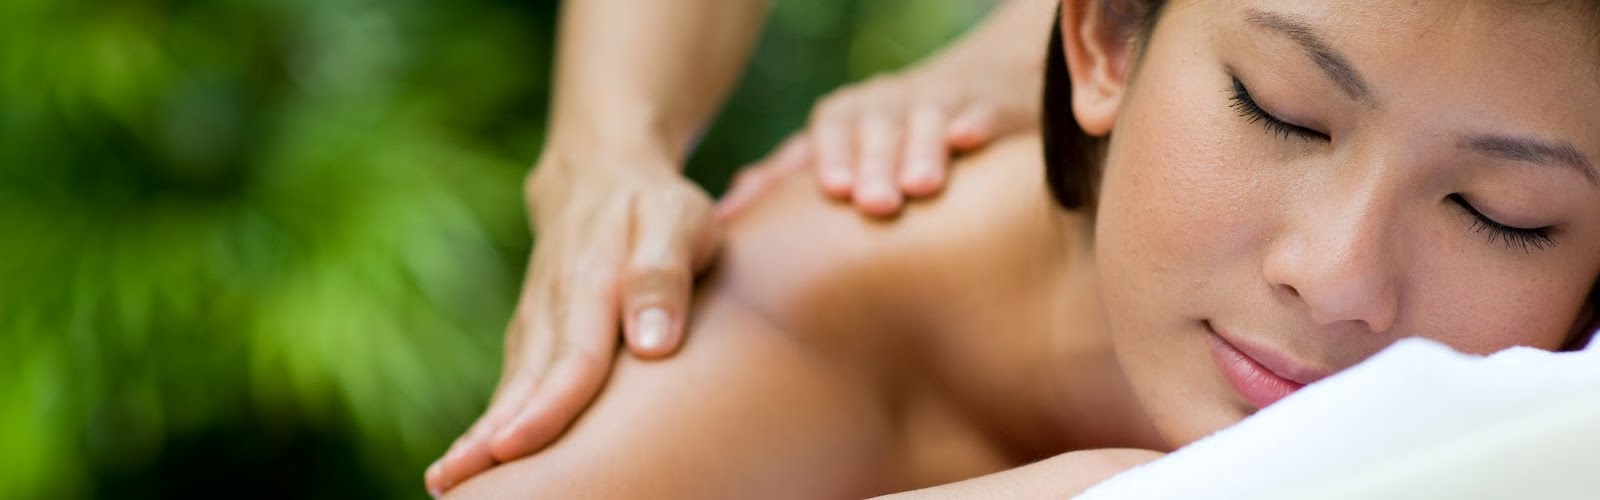 Facial & Massage Parlour Hove, Sussex | Body Base